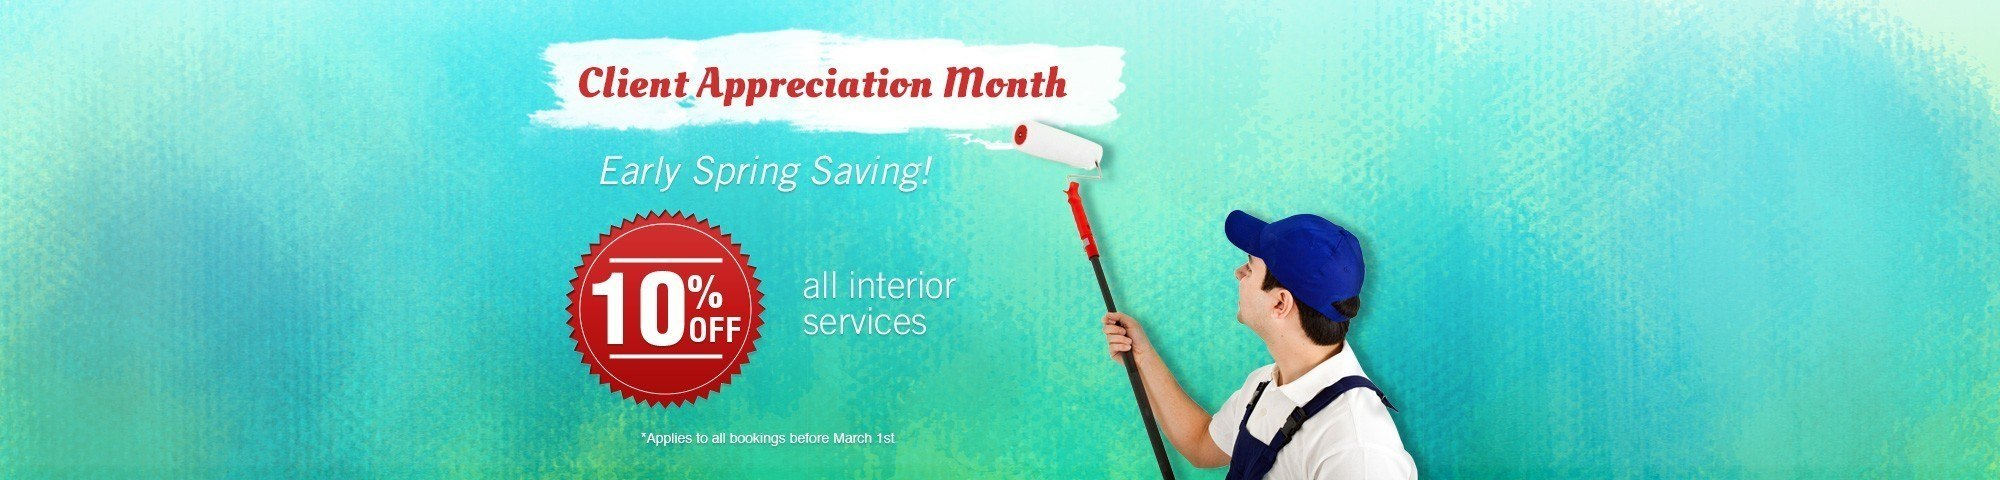 client appreciation month interior painting